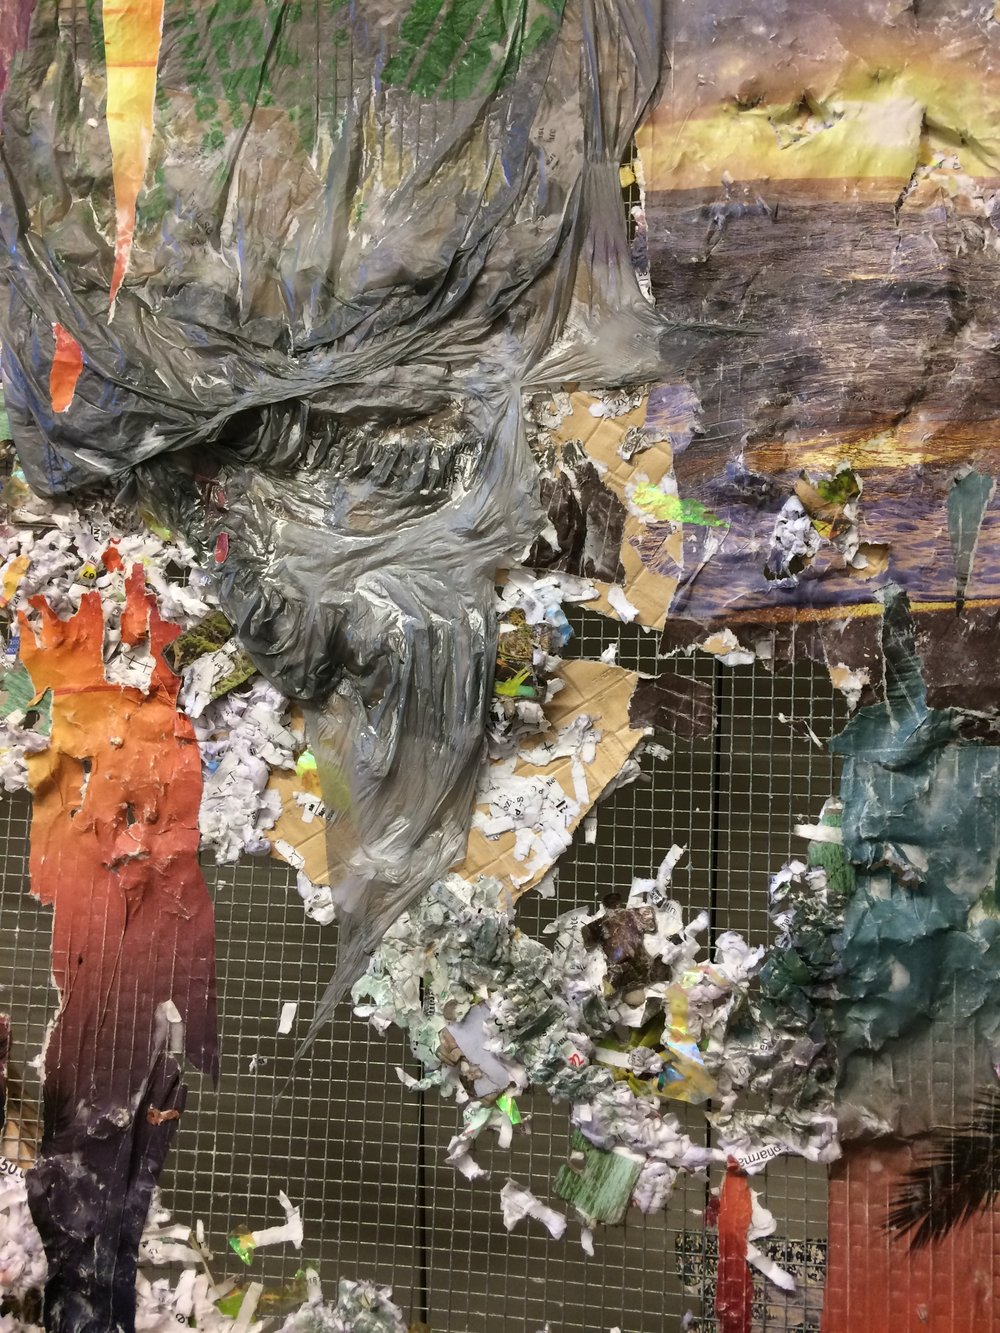 How Do I Raise the Ground Where I Land  (detail) ,  2017, Medical records, Banig print wallpaper, puzzle pieces, nature calendars, Dollar Tree and Subway bag, acrylic and oil on chicken wire and wood, 38 x 60 x 4 inches